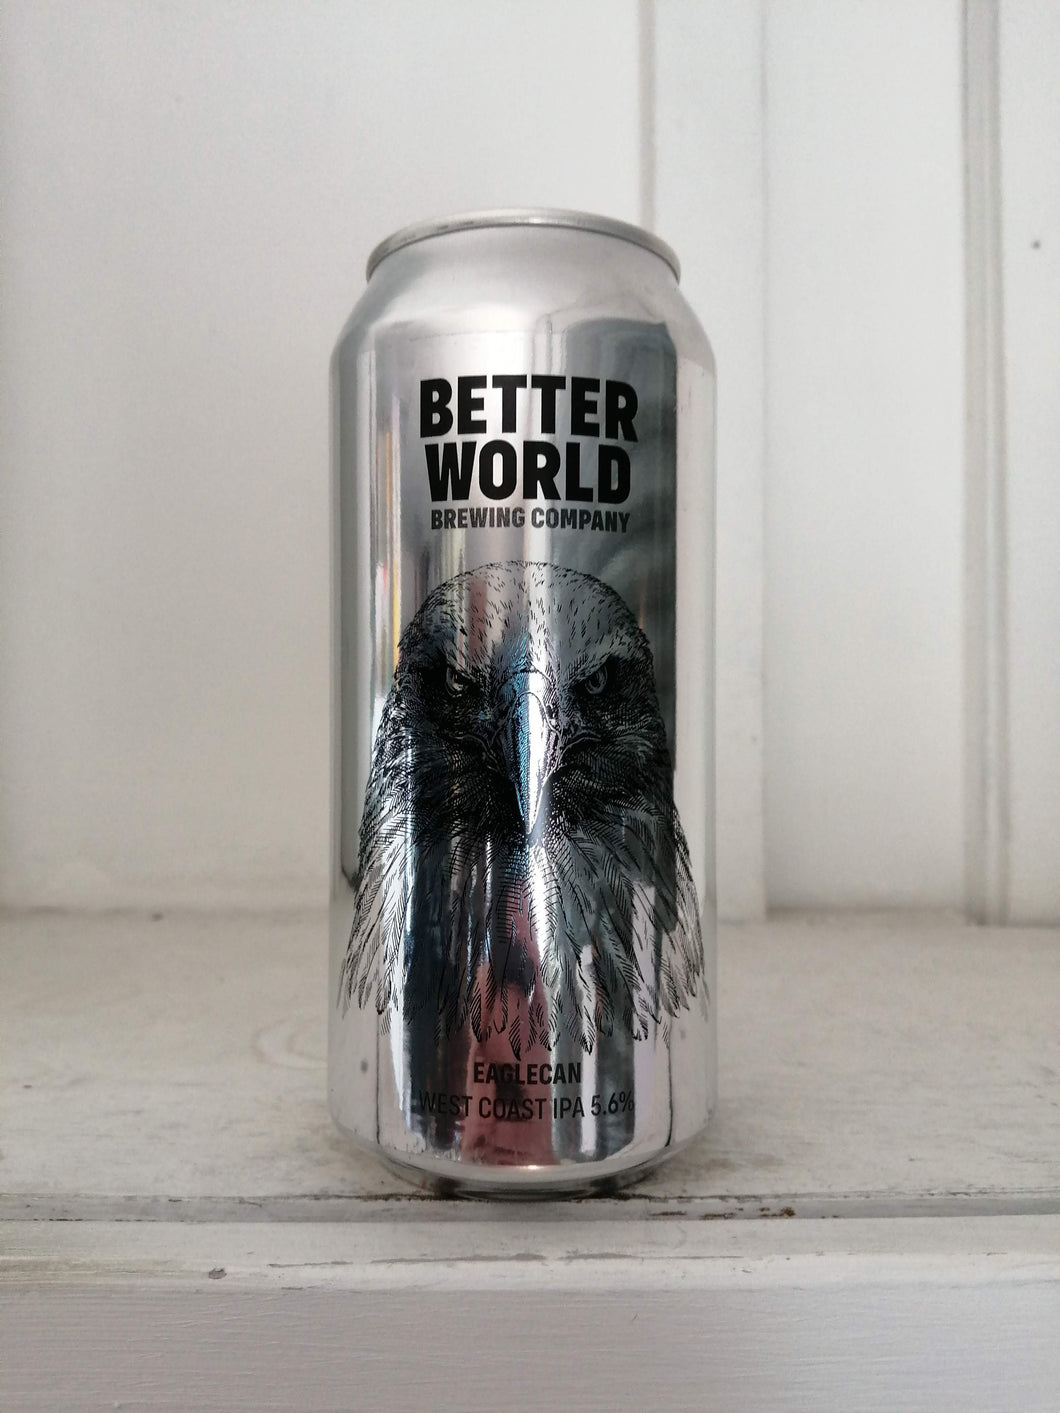 Better World Eaglecan 5.6% (440ml can)